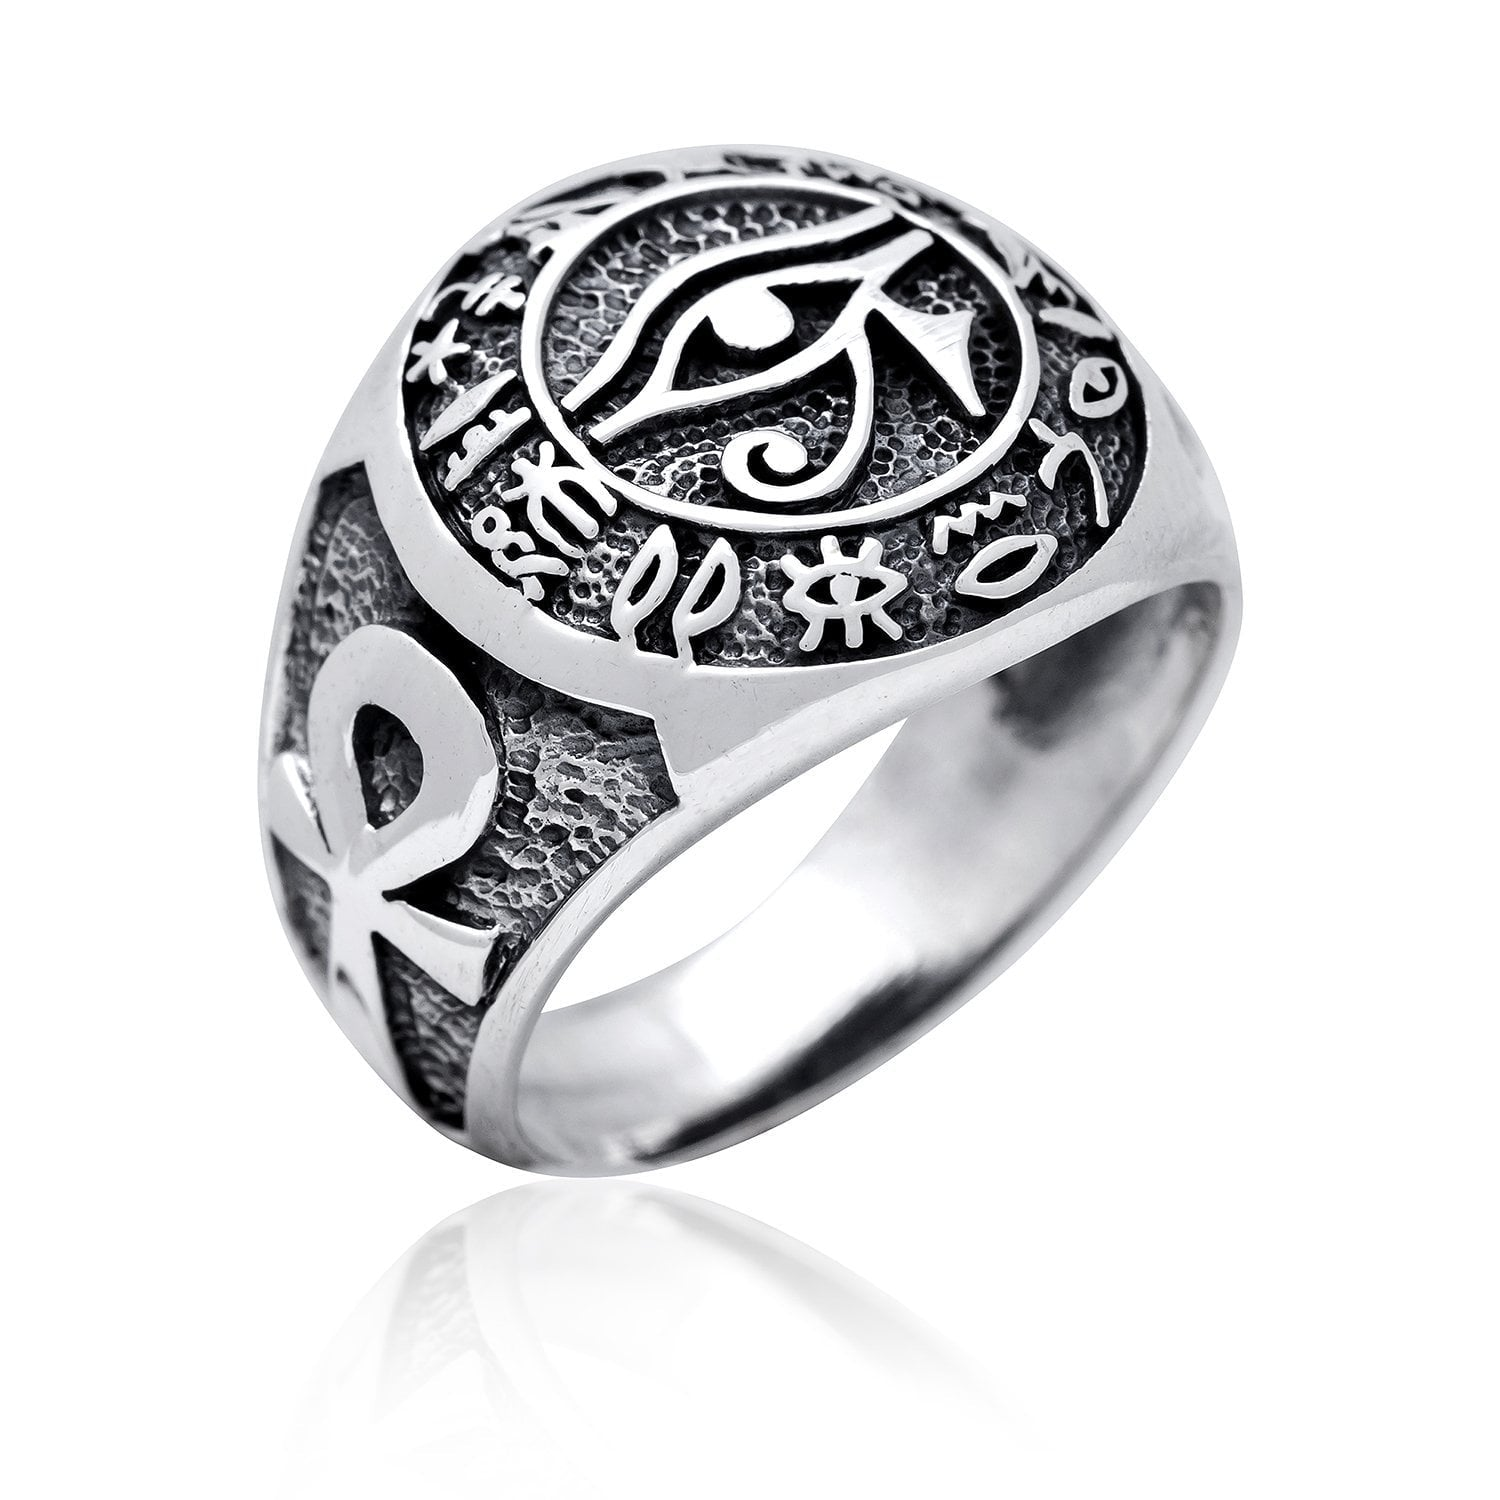 history of rinfit blogs wedding egyptian news rings the